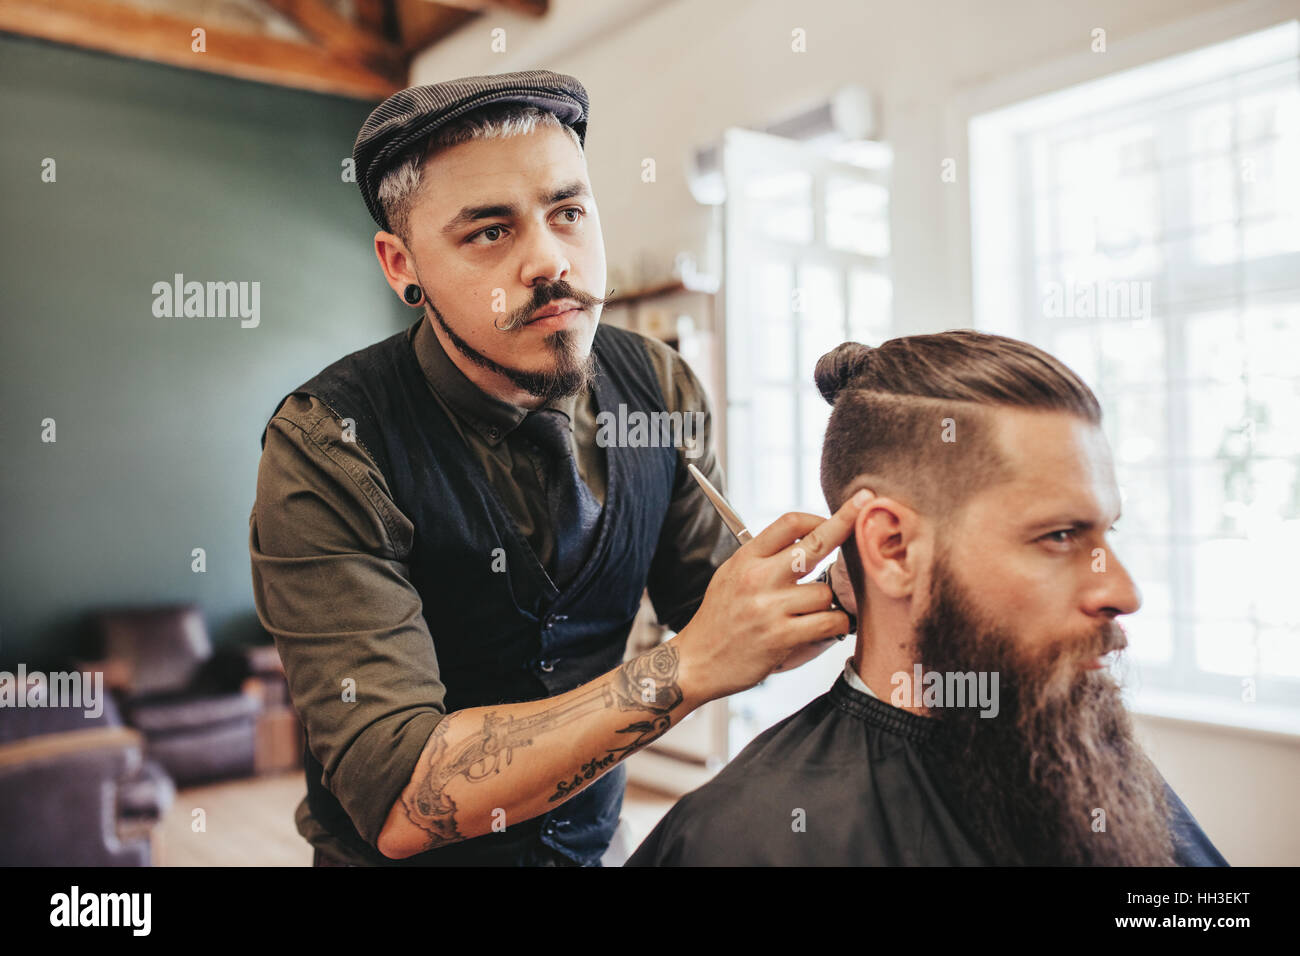 Hairdresser checking symmetry of haircut of his client at barbershop. Bearded man getting haircut by barber at barbershop - Stock Image